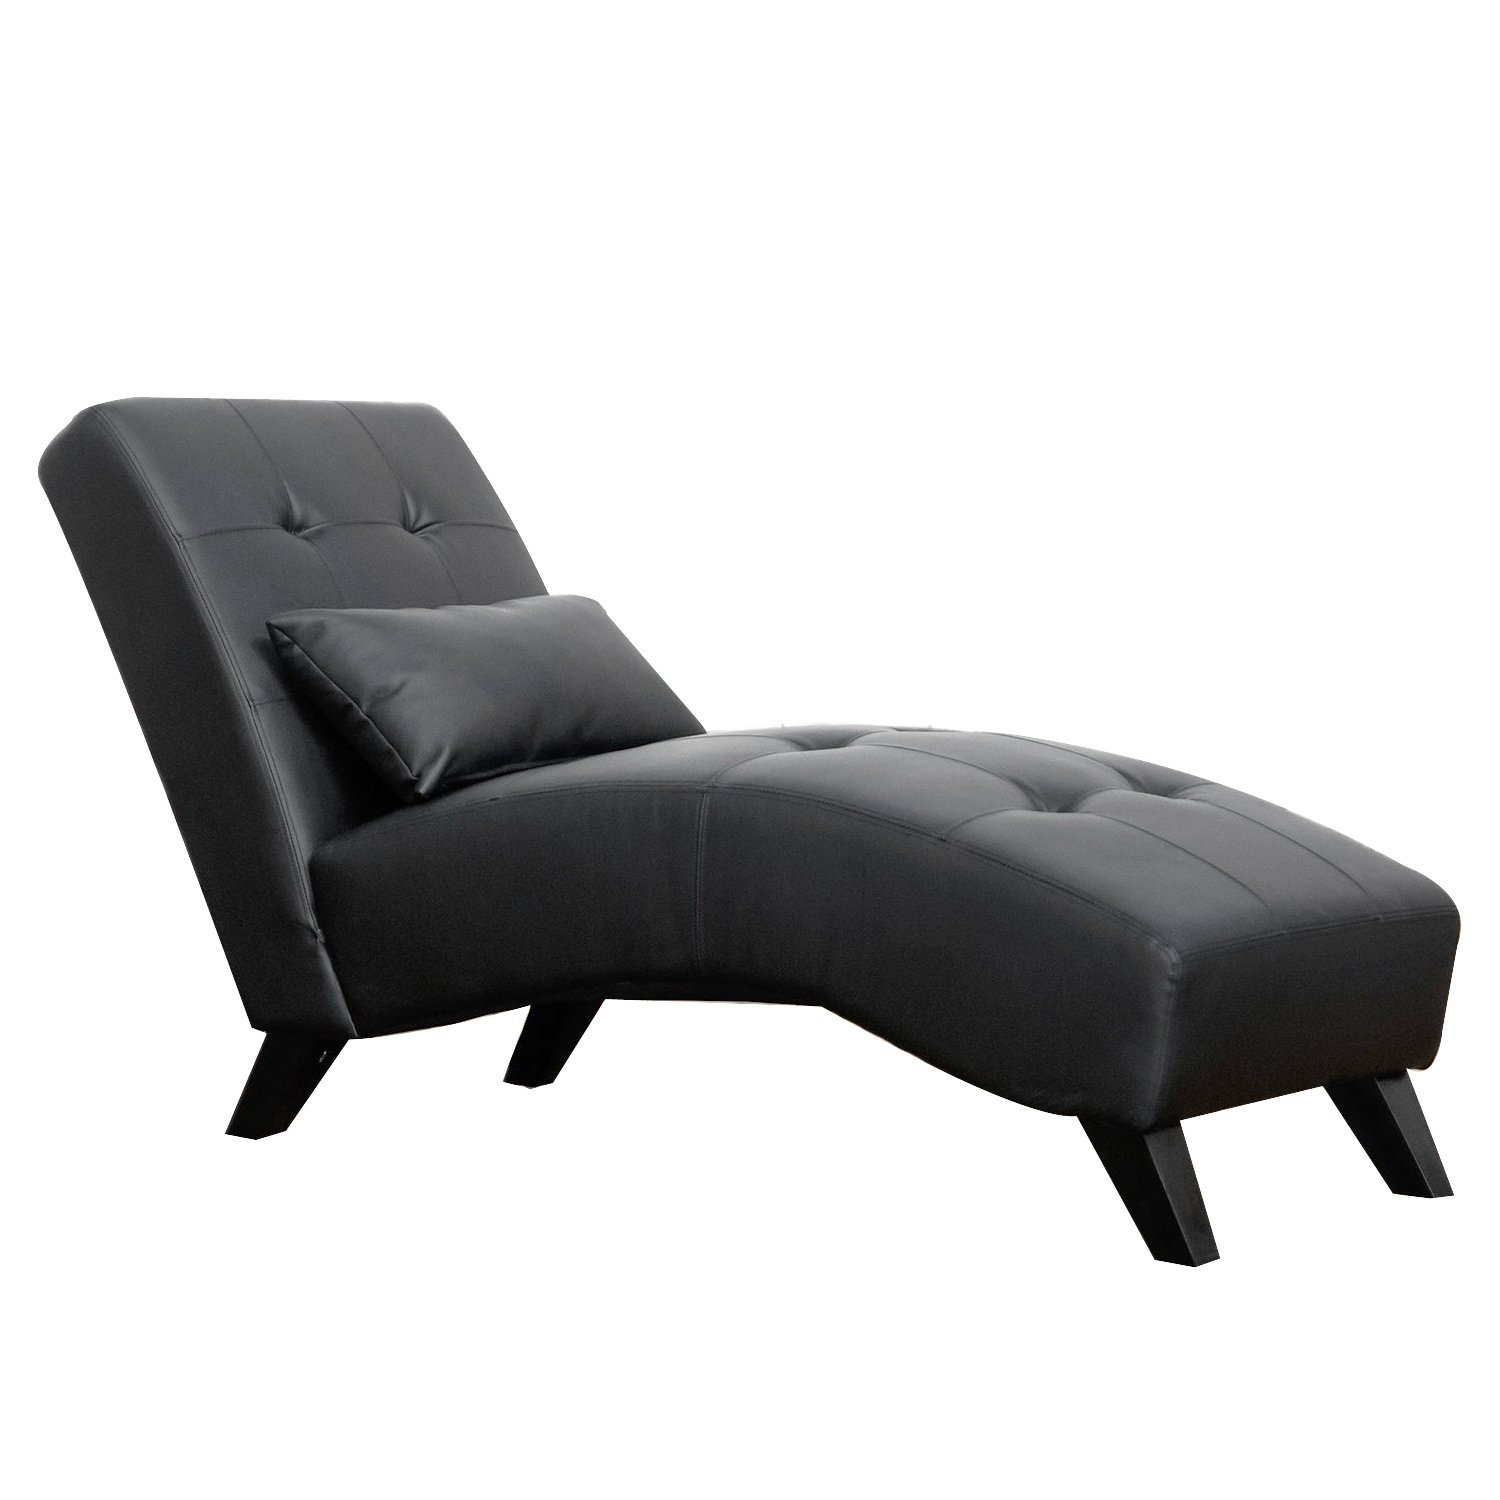 Chaise Lounge Amazon Within Lounge Sofas And Chairs (Image 5 of 15)